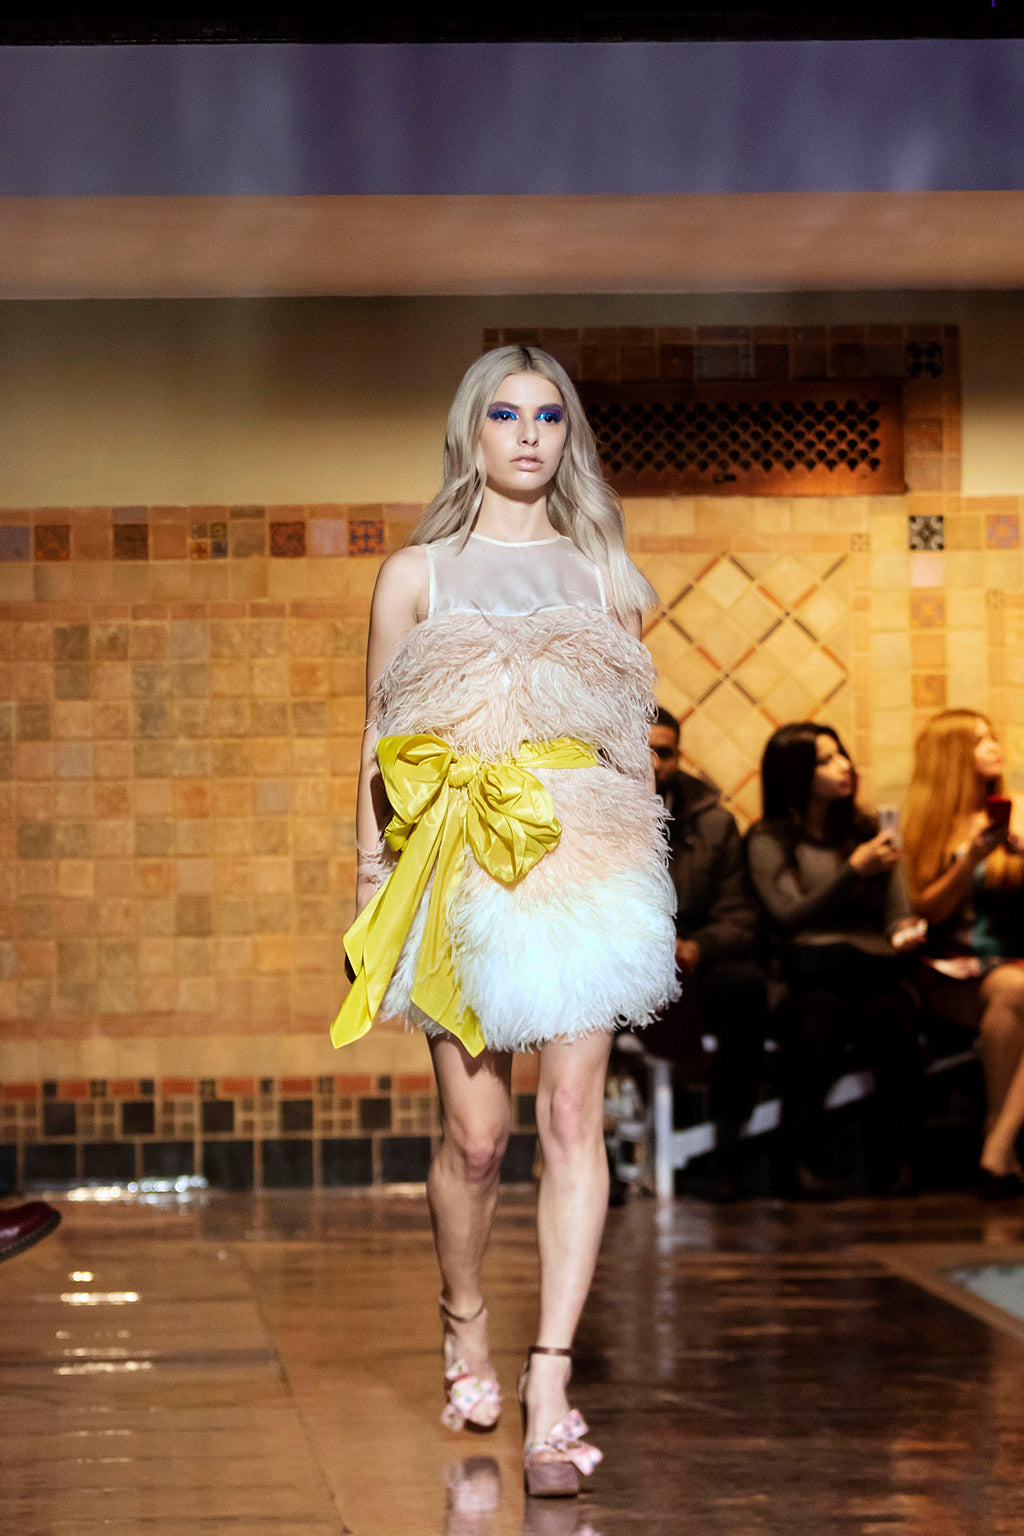 Cynthia Rowley Fall 2019 look 20 featuring a mini ombre sleeveless dress with yellow sash